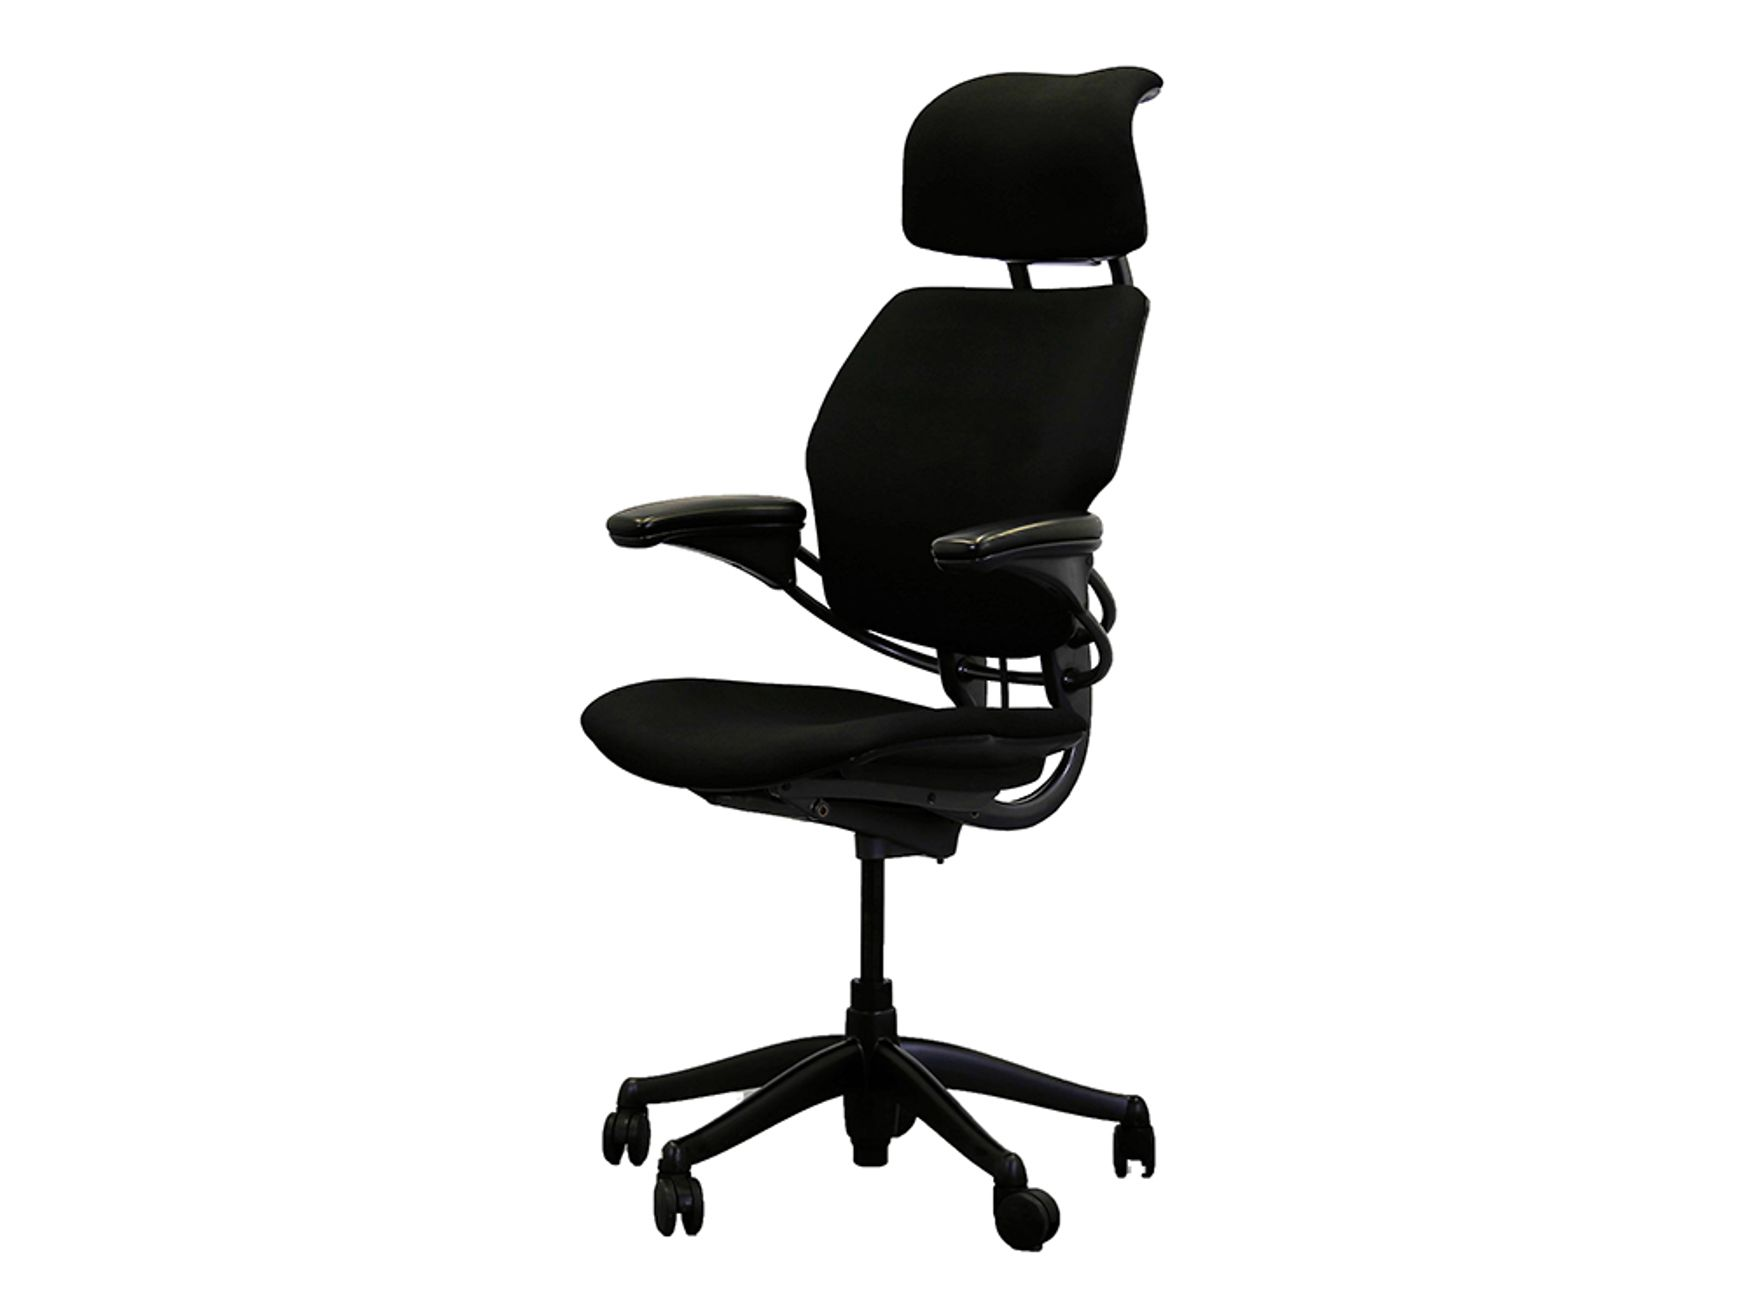 <b>48-Hour Delivery!<b/><br> Excellent refurbished High-back Humanscale 'Freedom' chairs